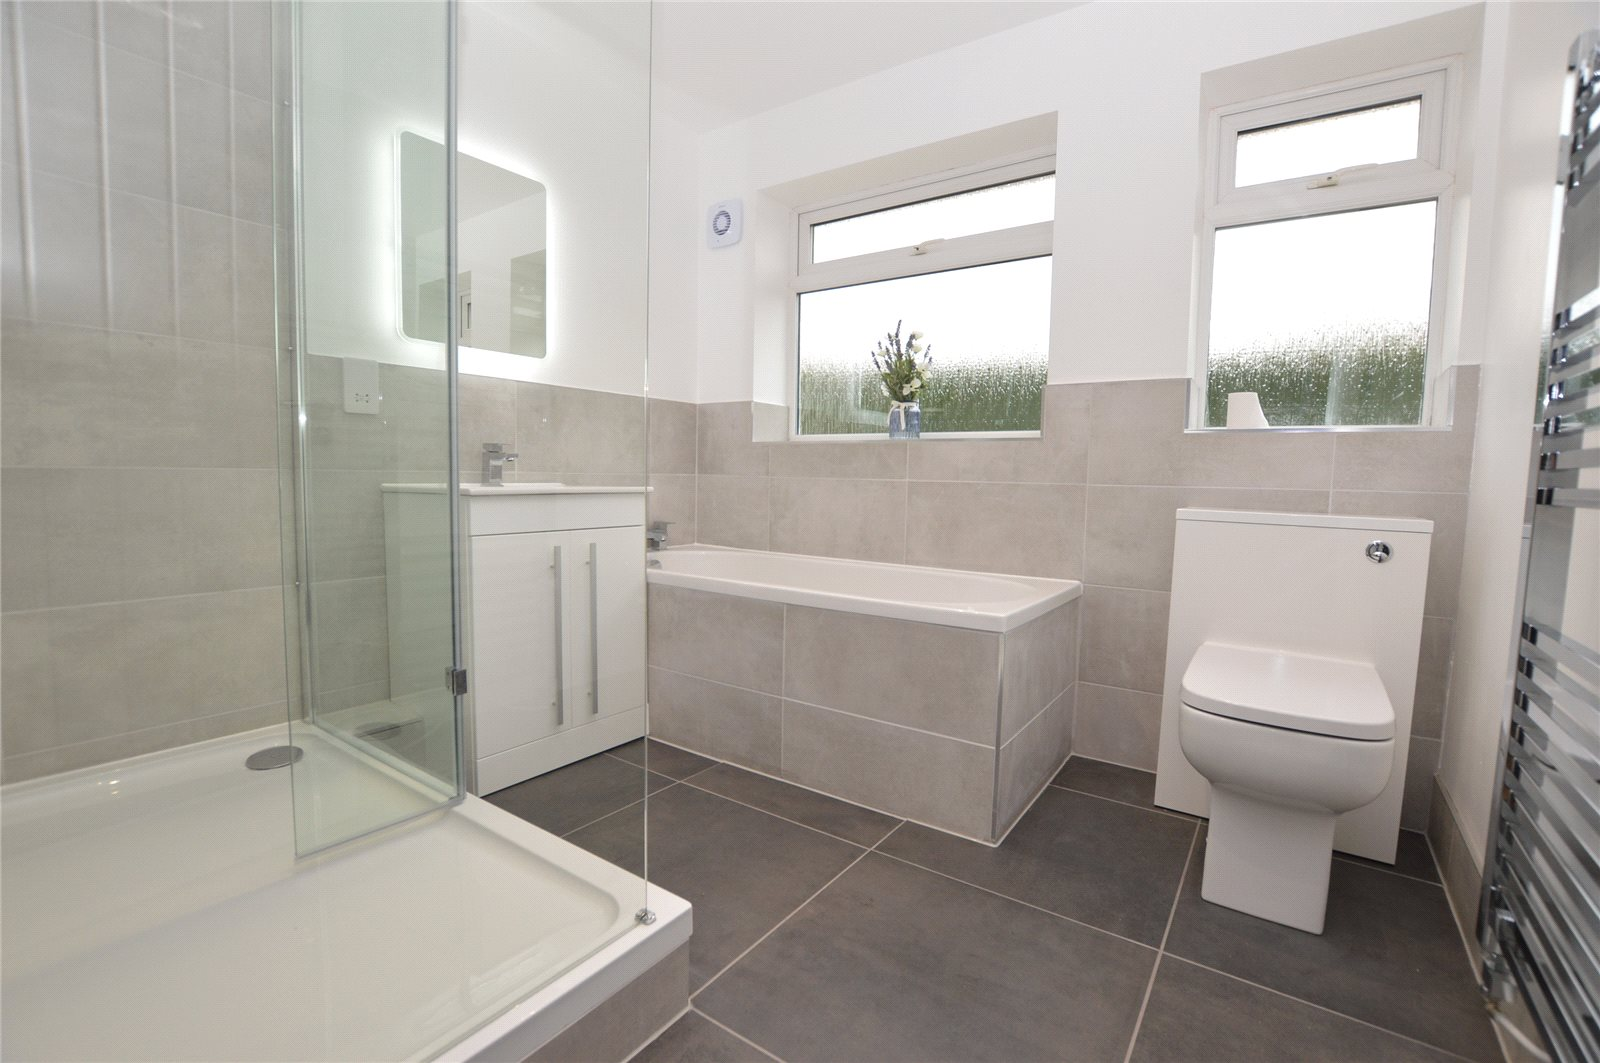 property for sale in Garforth, interior fitted modern bathroom